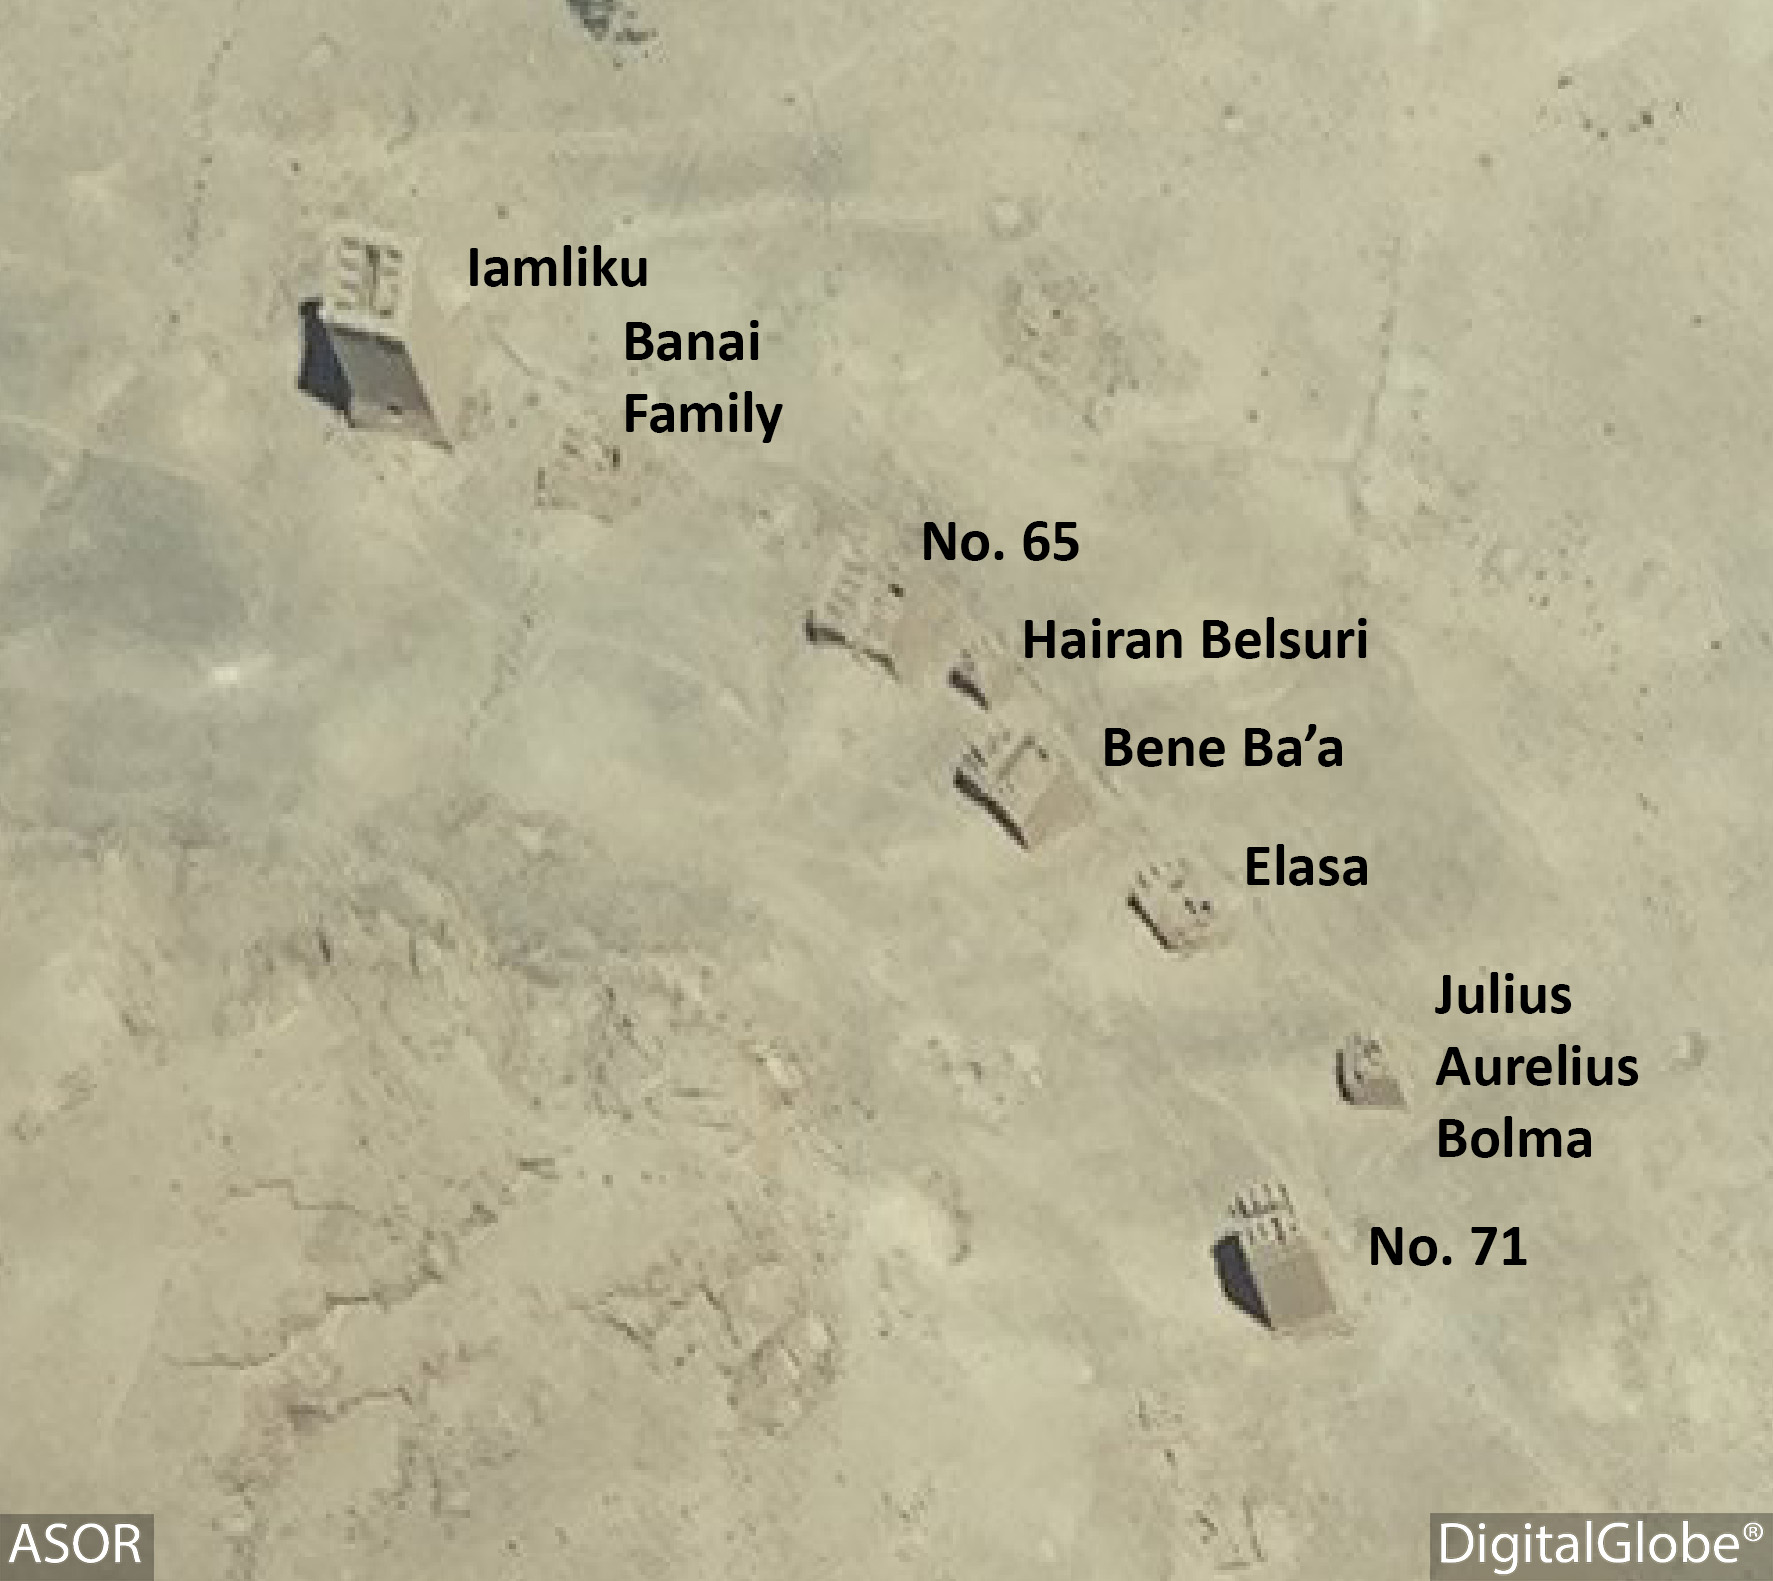 Figure 9. Satellite imagery of Tower Tombs. No visible damage (DigitalGlobe; June 26, 2015).